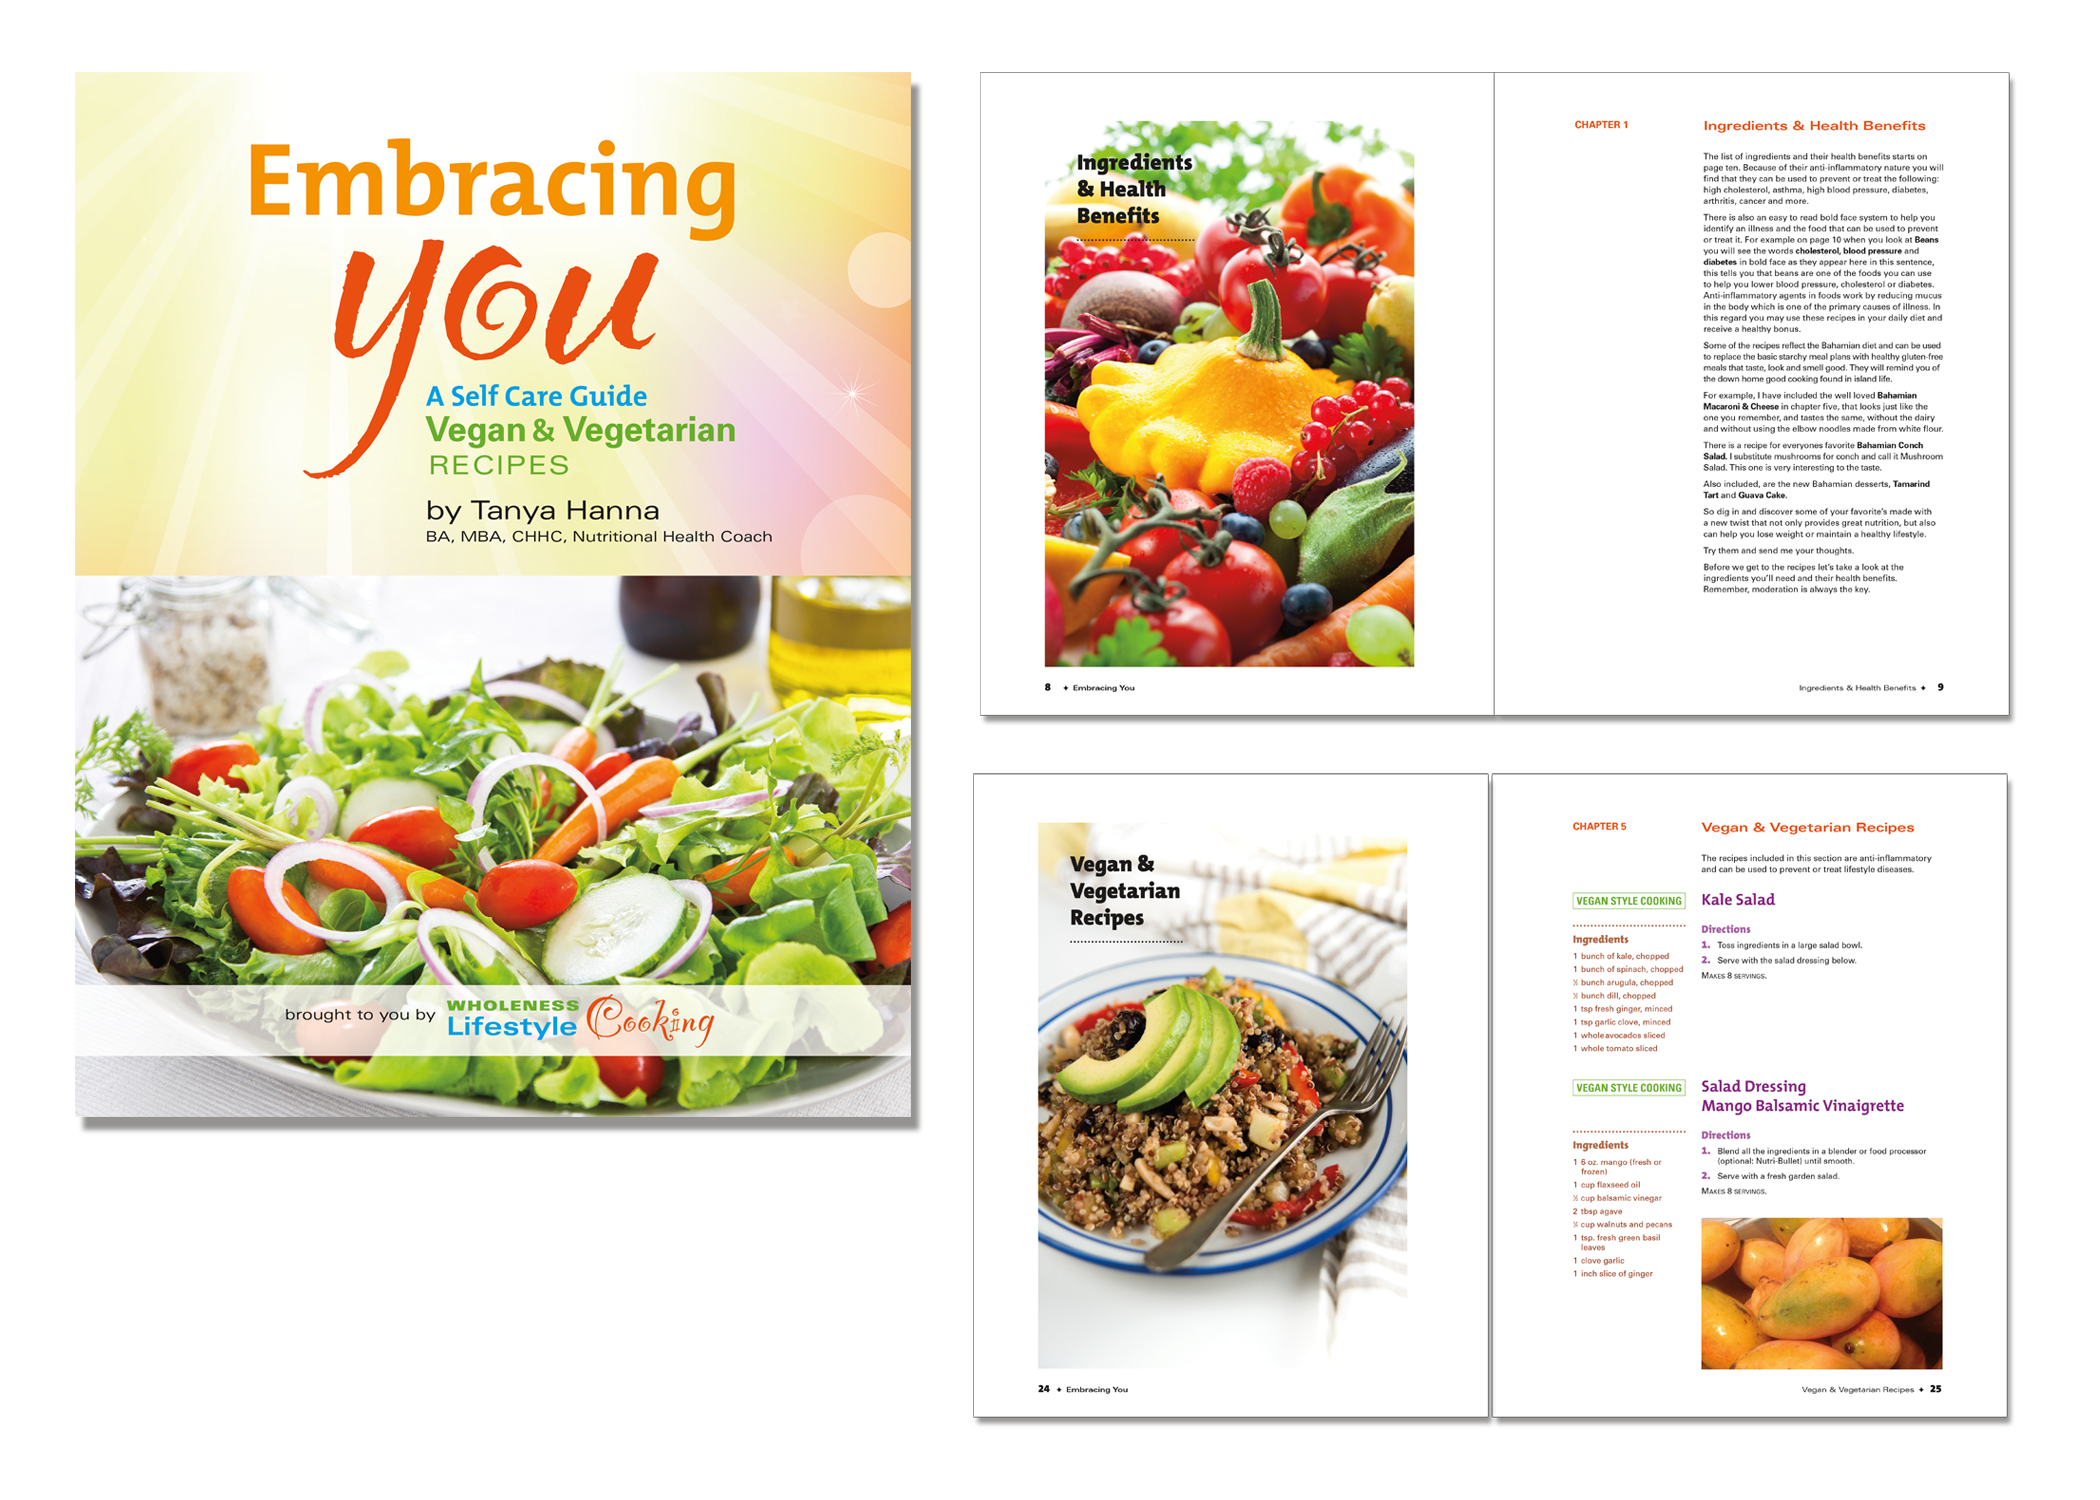 Embracing You cookbook